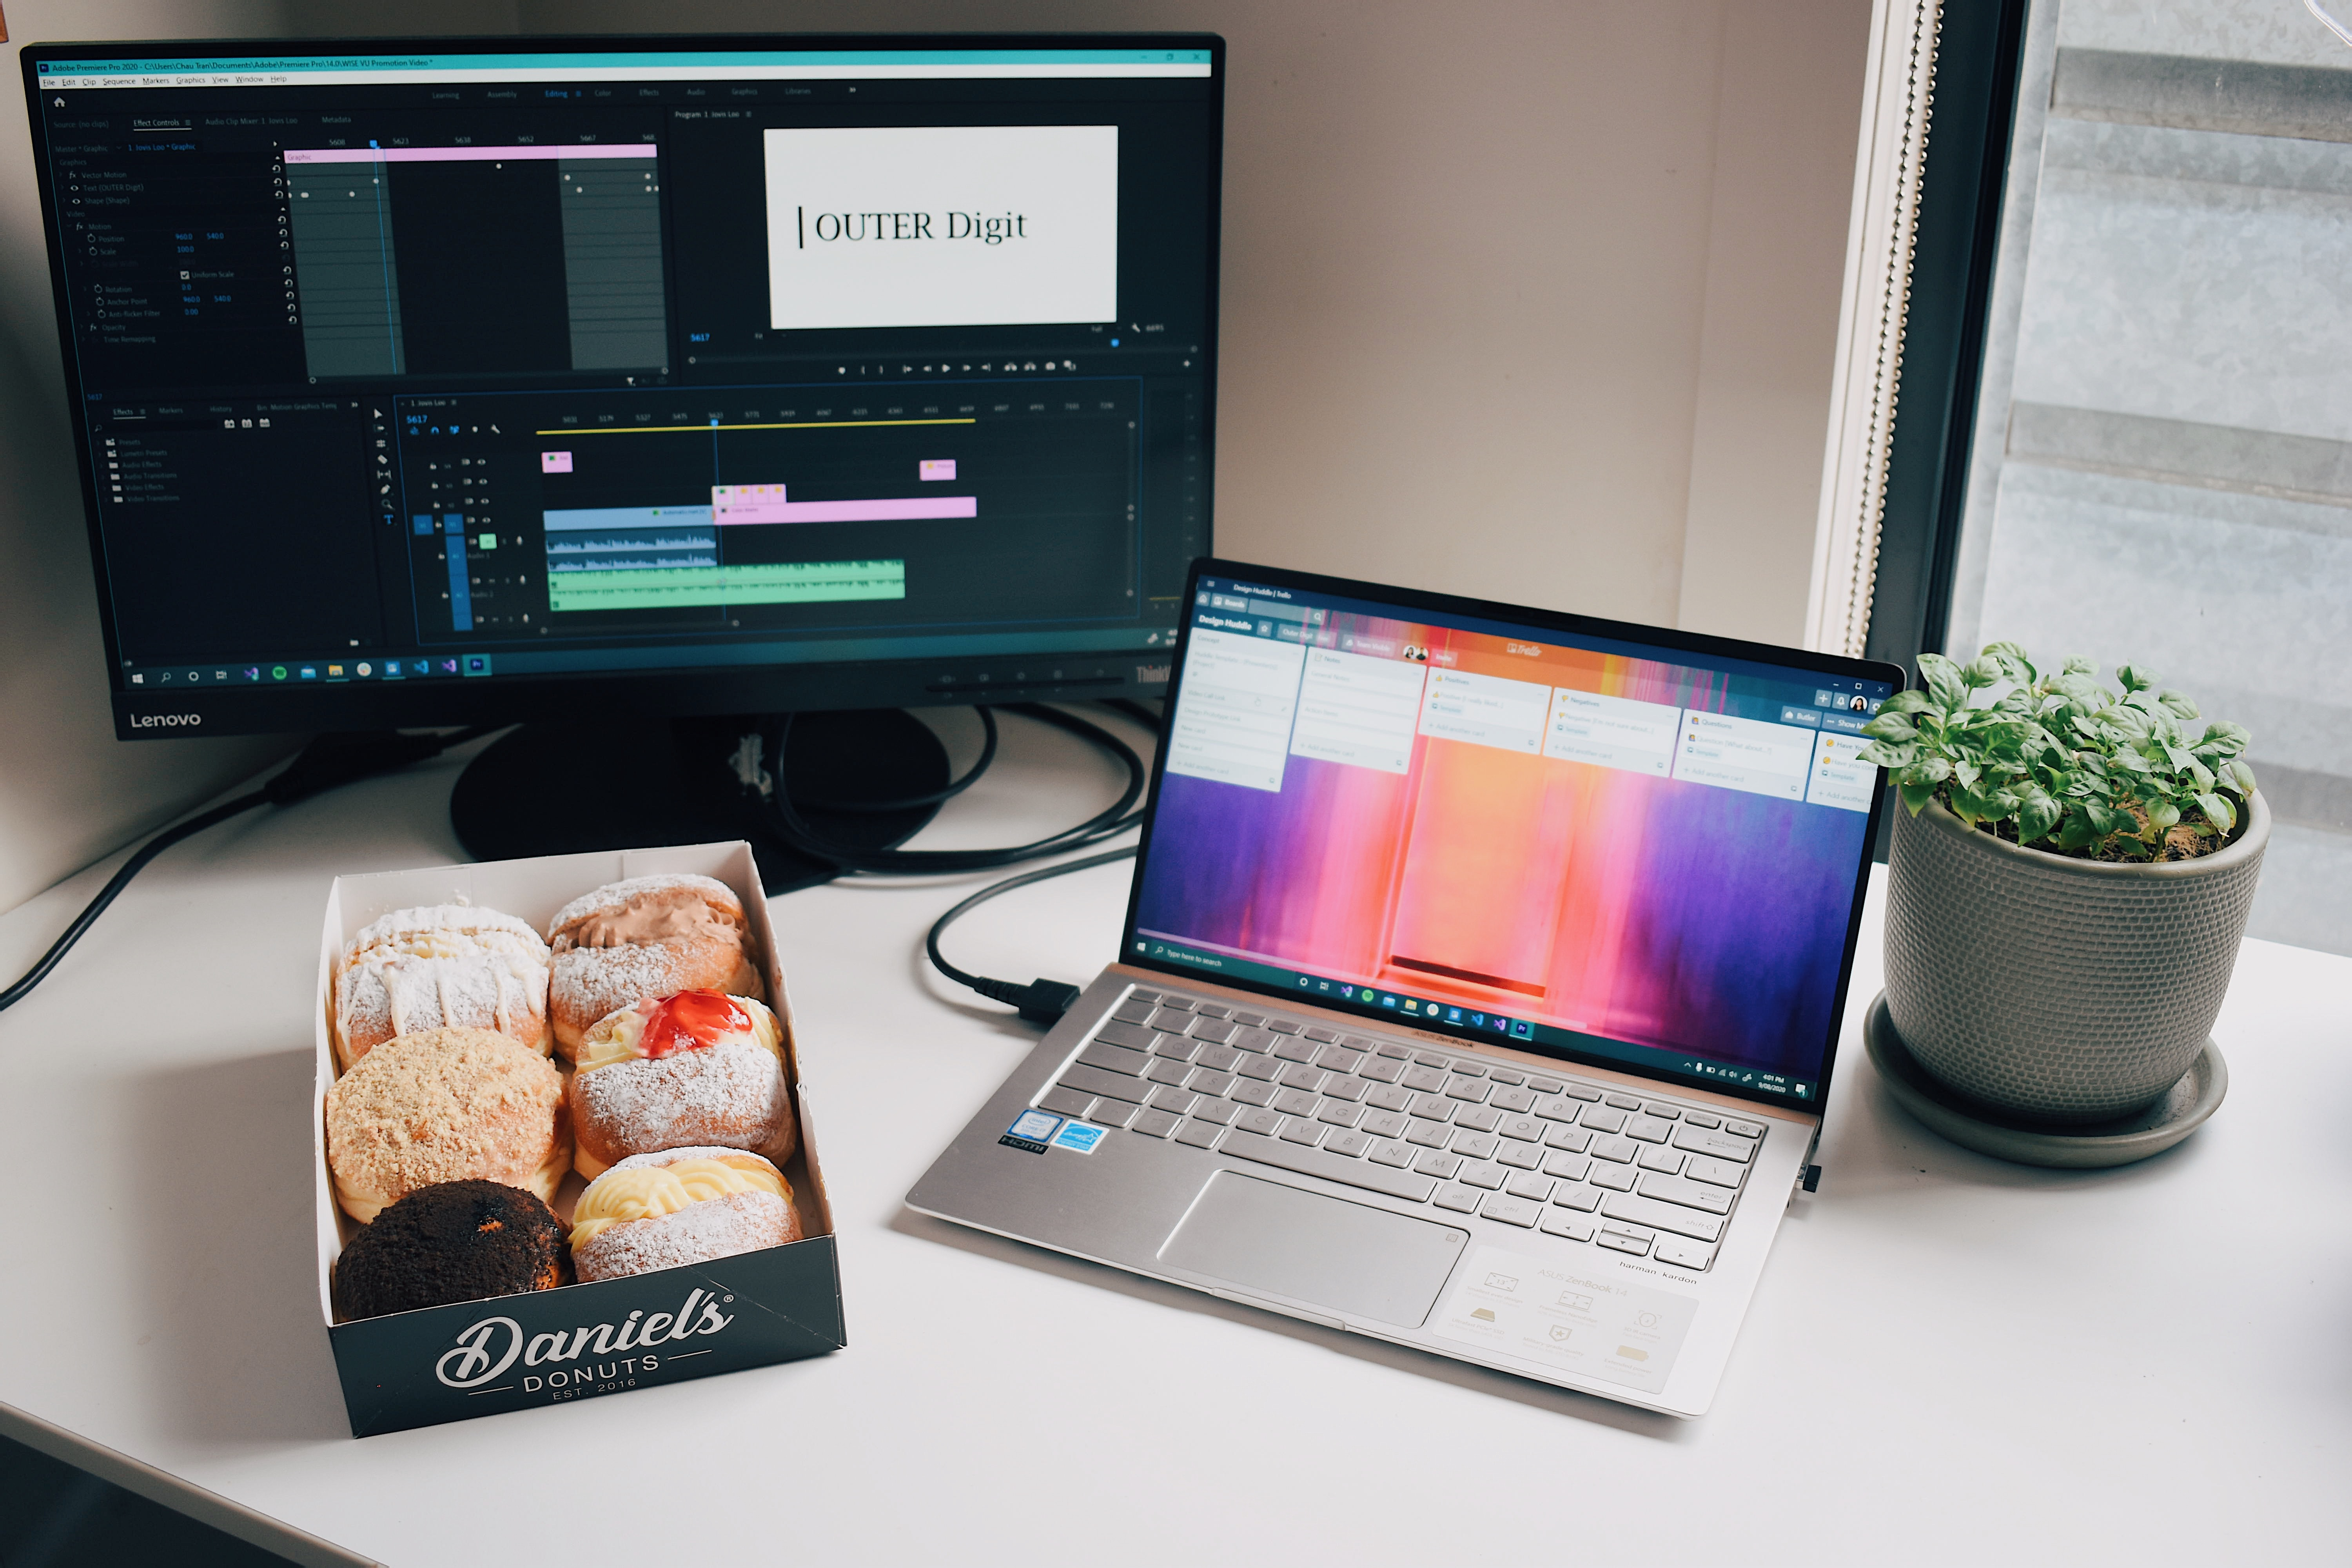 An office workspace with a laptop, a monitor, a plant, and a box of donuts.